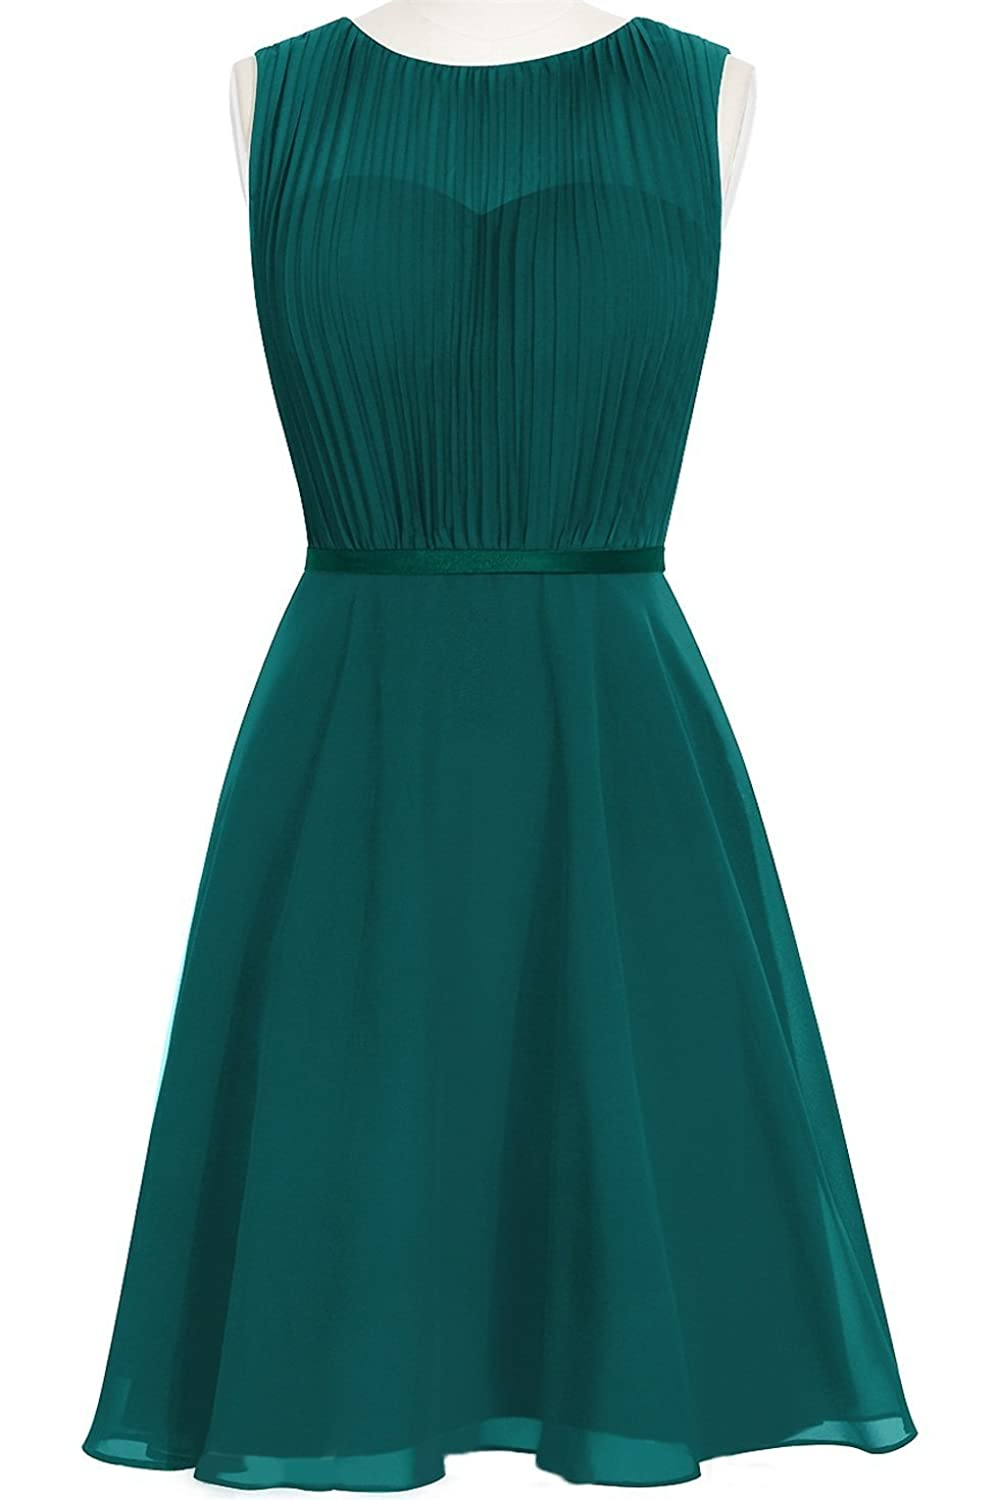 MittyDresses 2015 New Cocktail Homecoming Dresses for Girl Evening Party Size 18W US Peacock